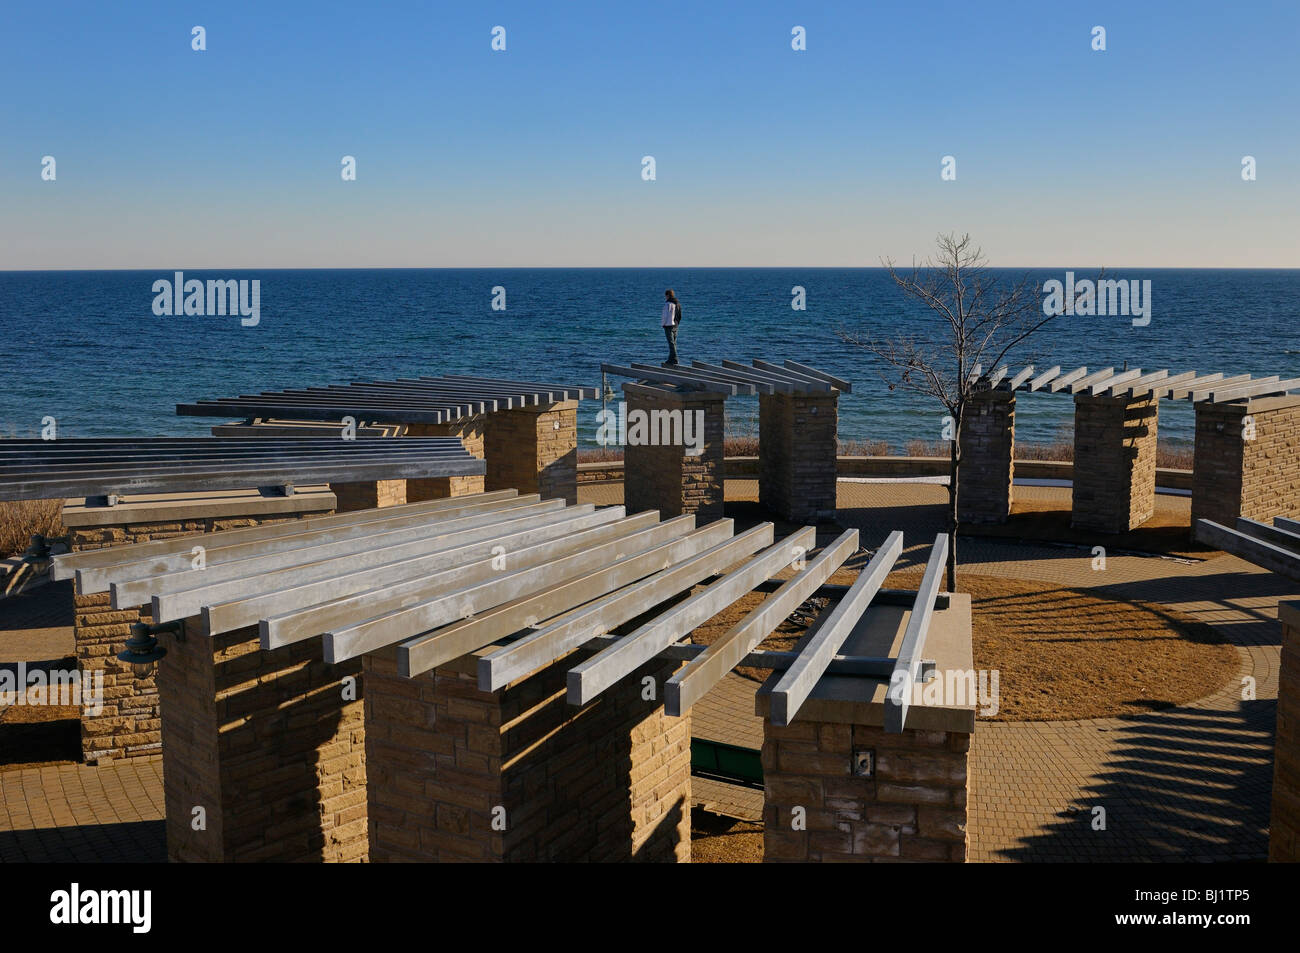 Parkour traceur standing on top of stonehenge structure at Ajax waterfront at the old water plant site at Lake Ontario - Stock Image